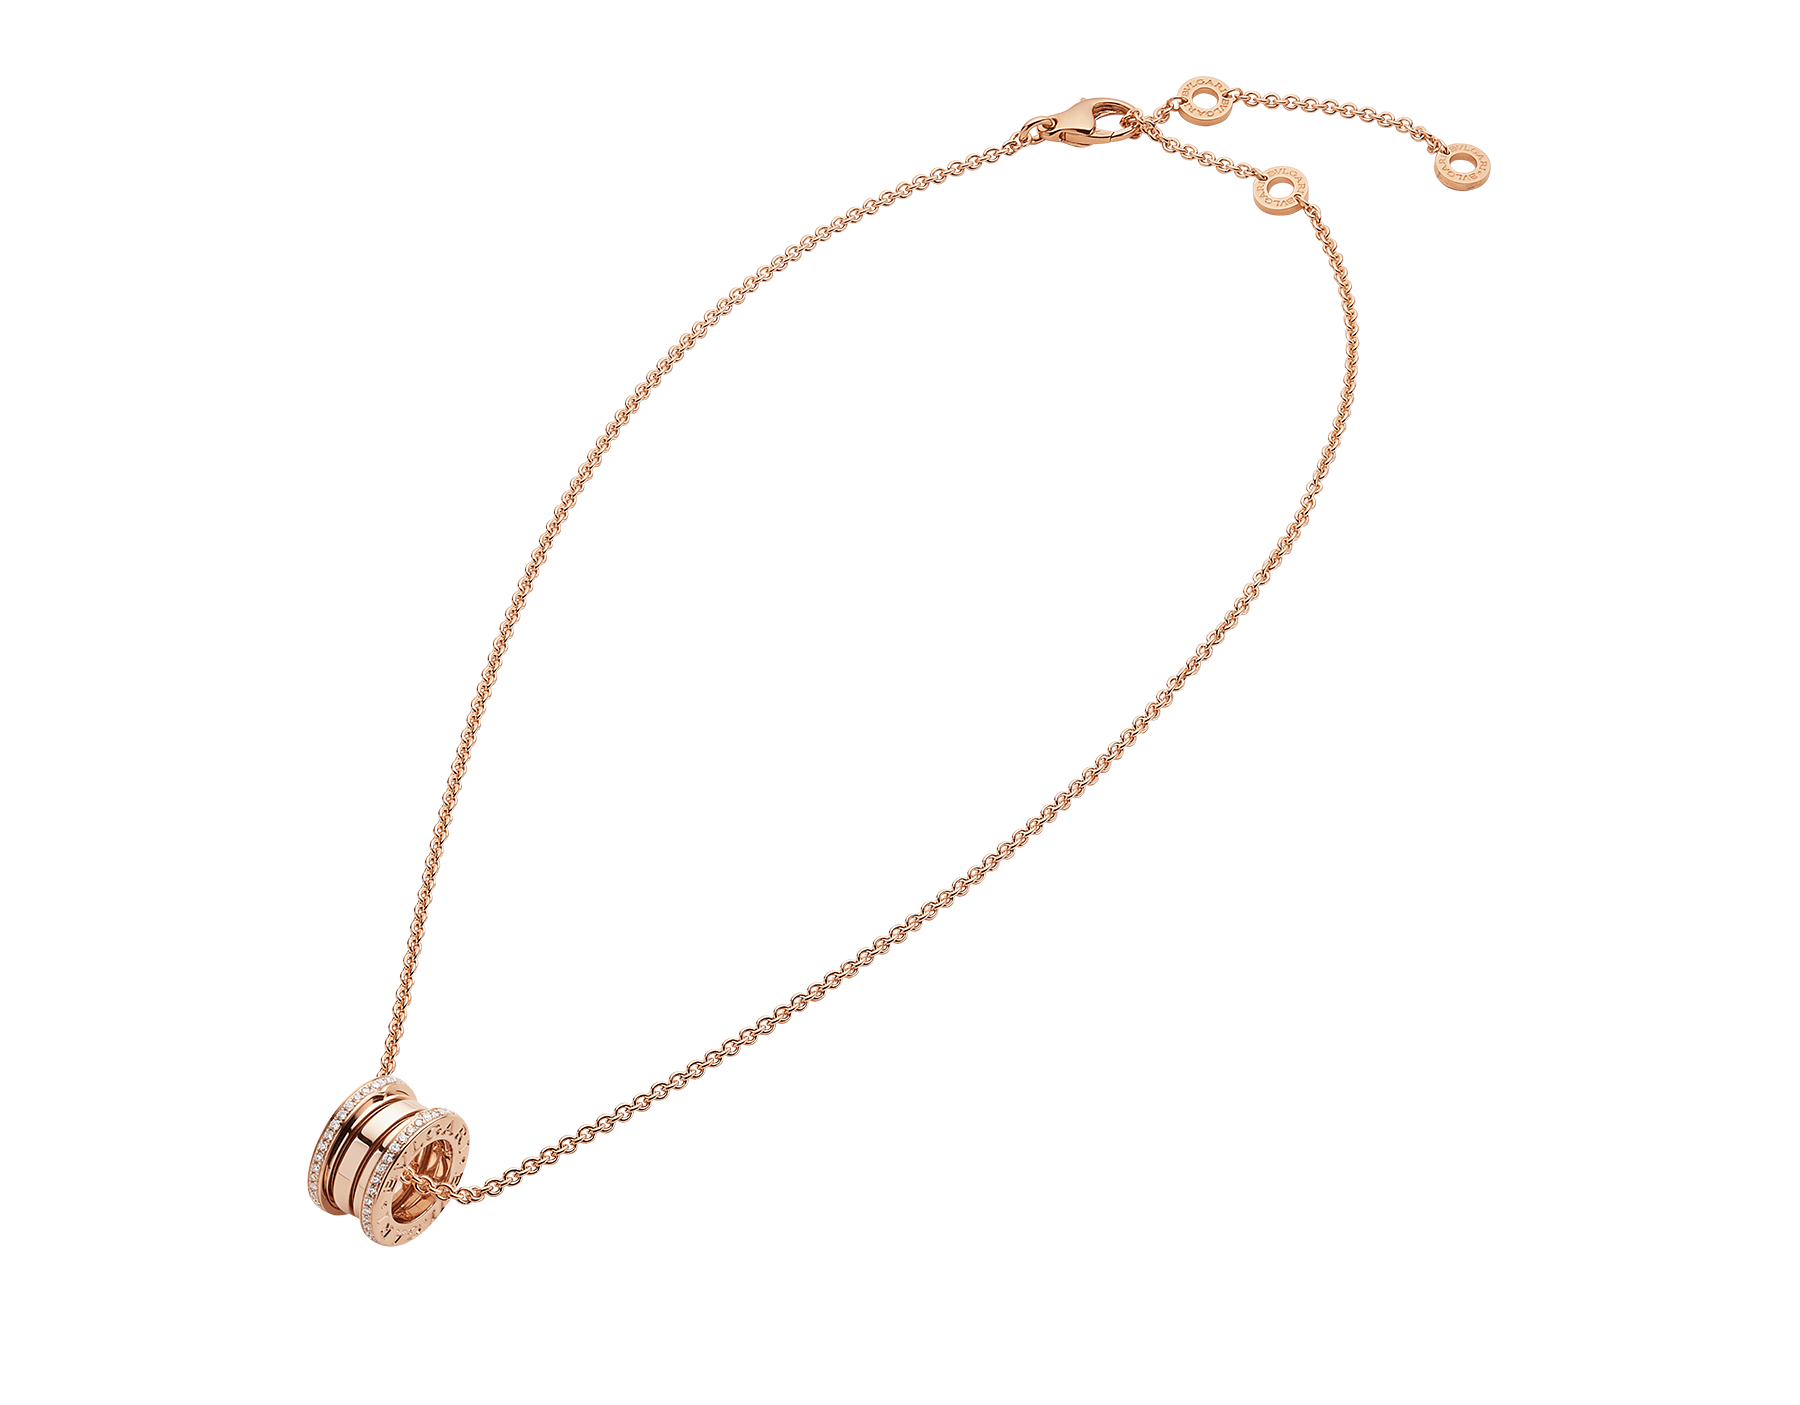 B.zero1 necklace with 18 kt rose gold chain and 18 kt rose gold round pendant set with pavé diamonds on the edges. 350052 image 2